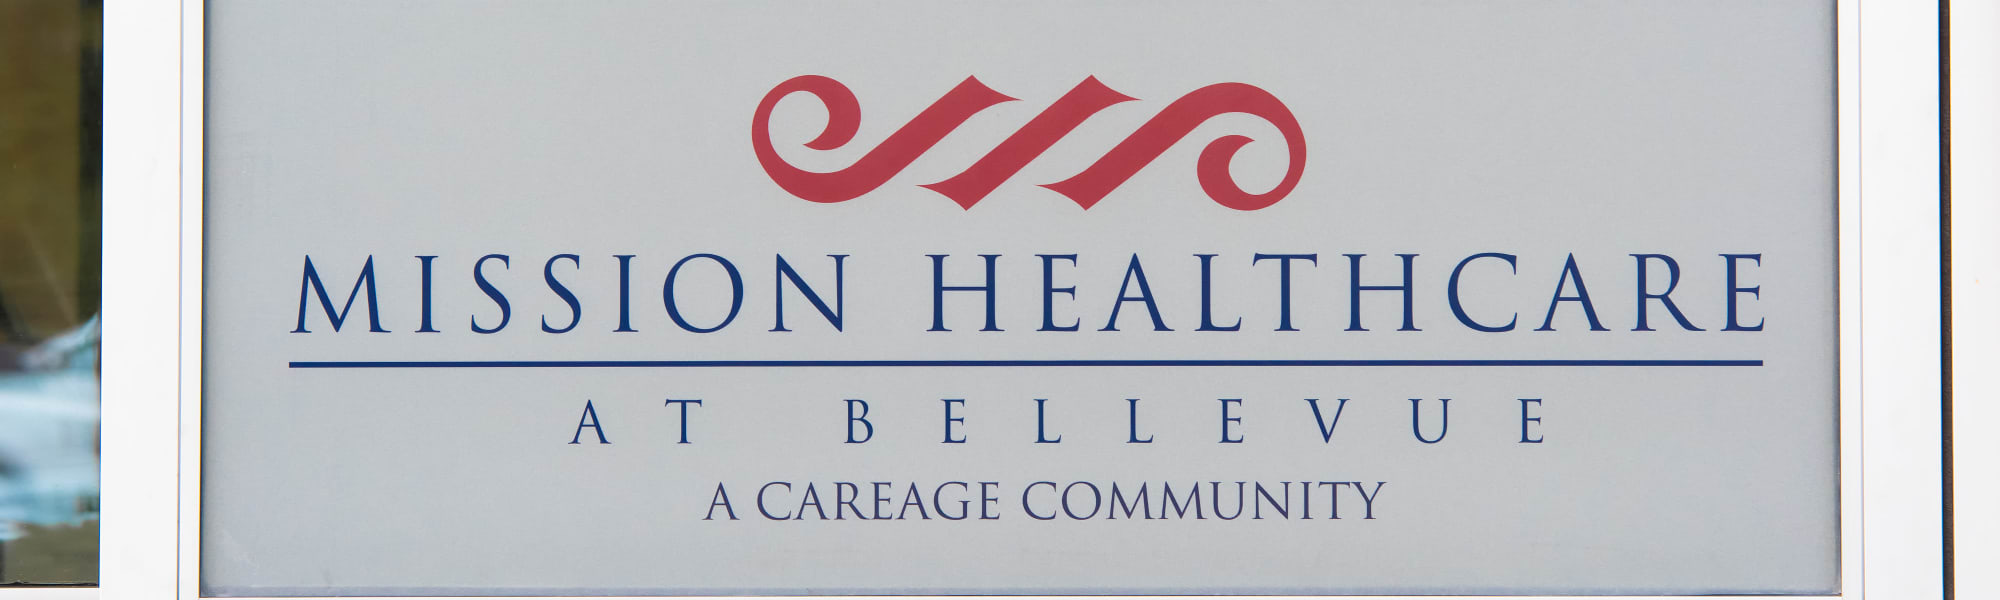 map and directions to Mission Healthcare at Bellevue in Bellevue, Washington.